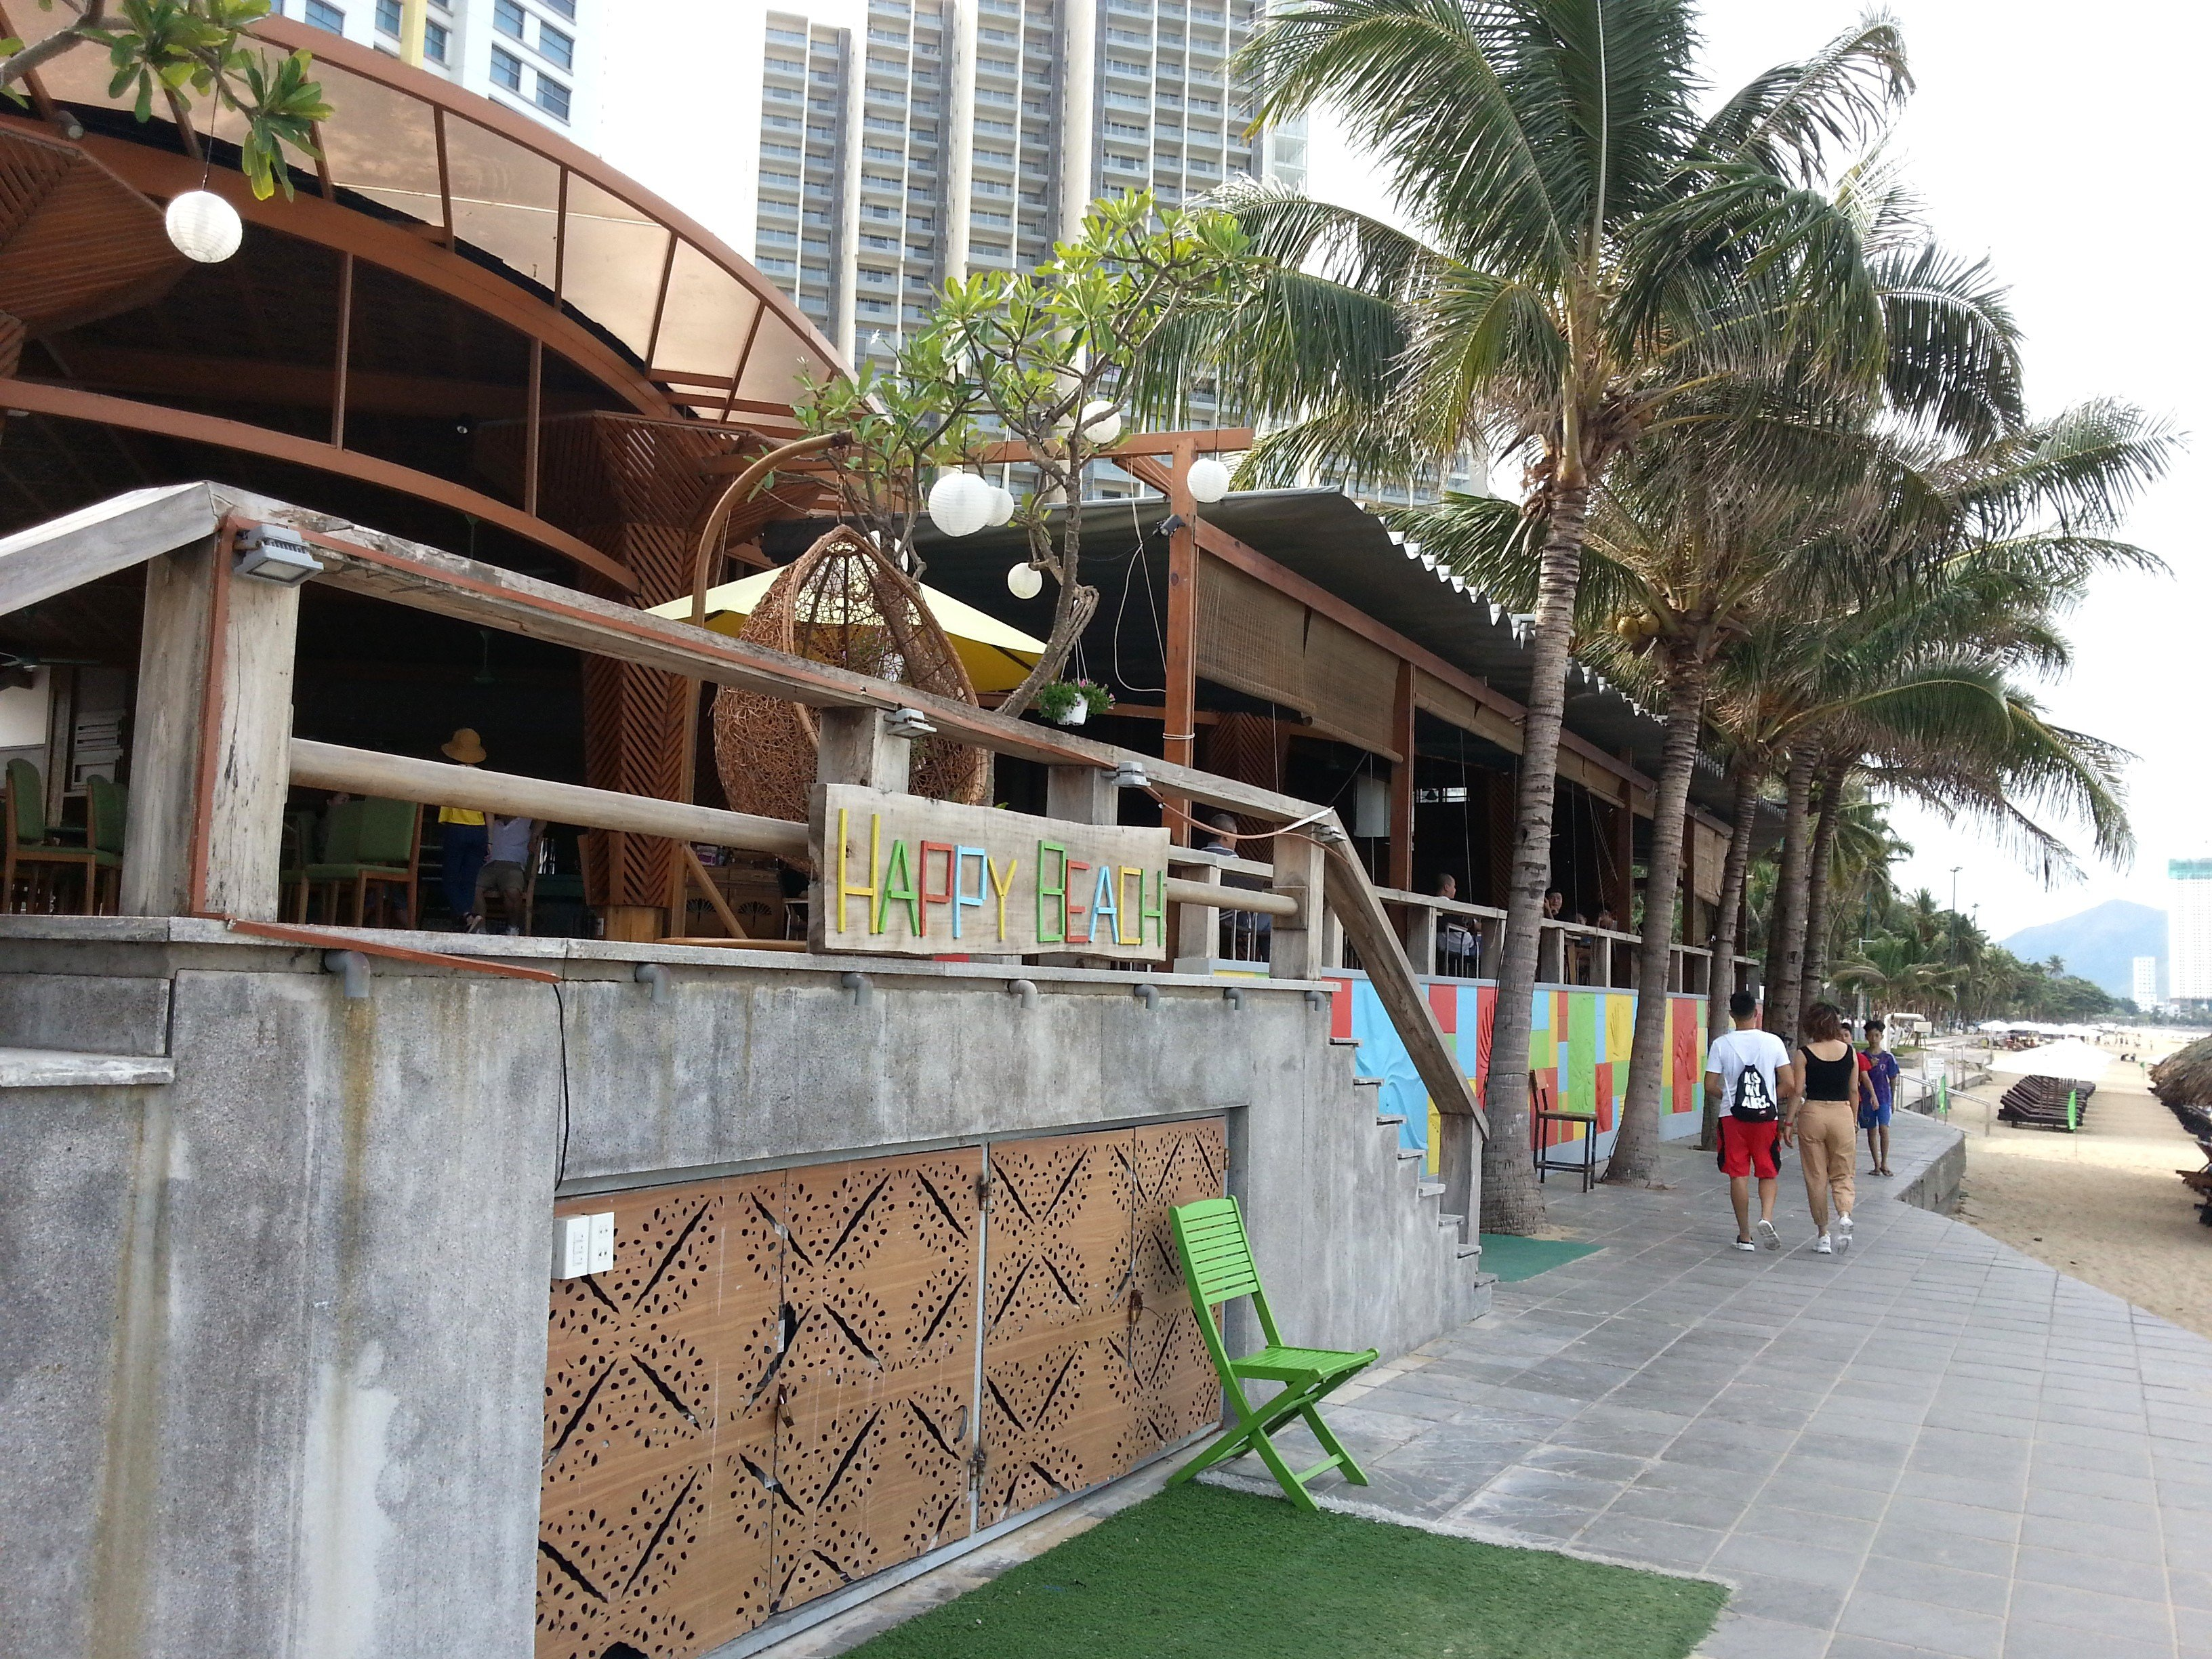 Happy Beach Restaurant on Nha Trang Beach